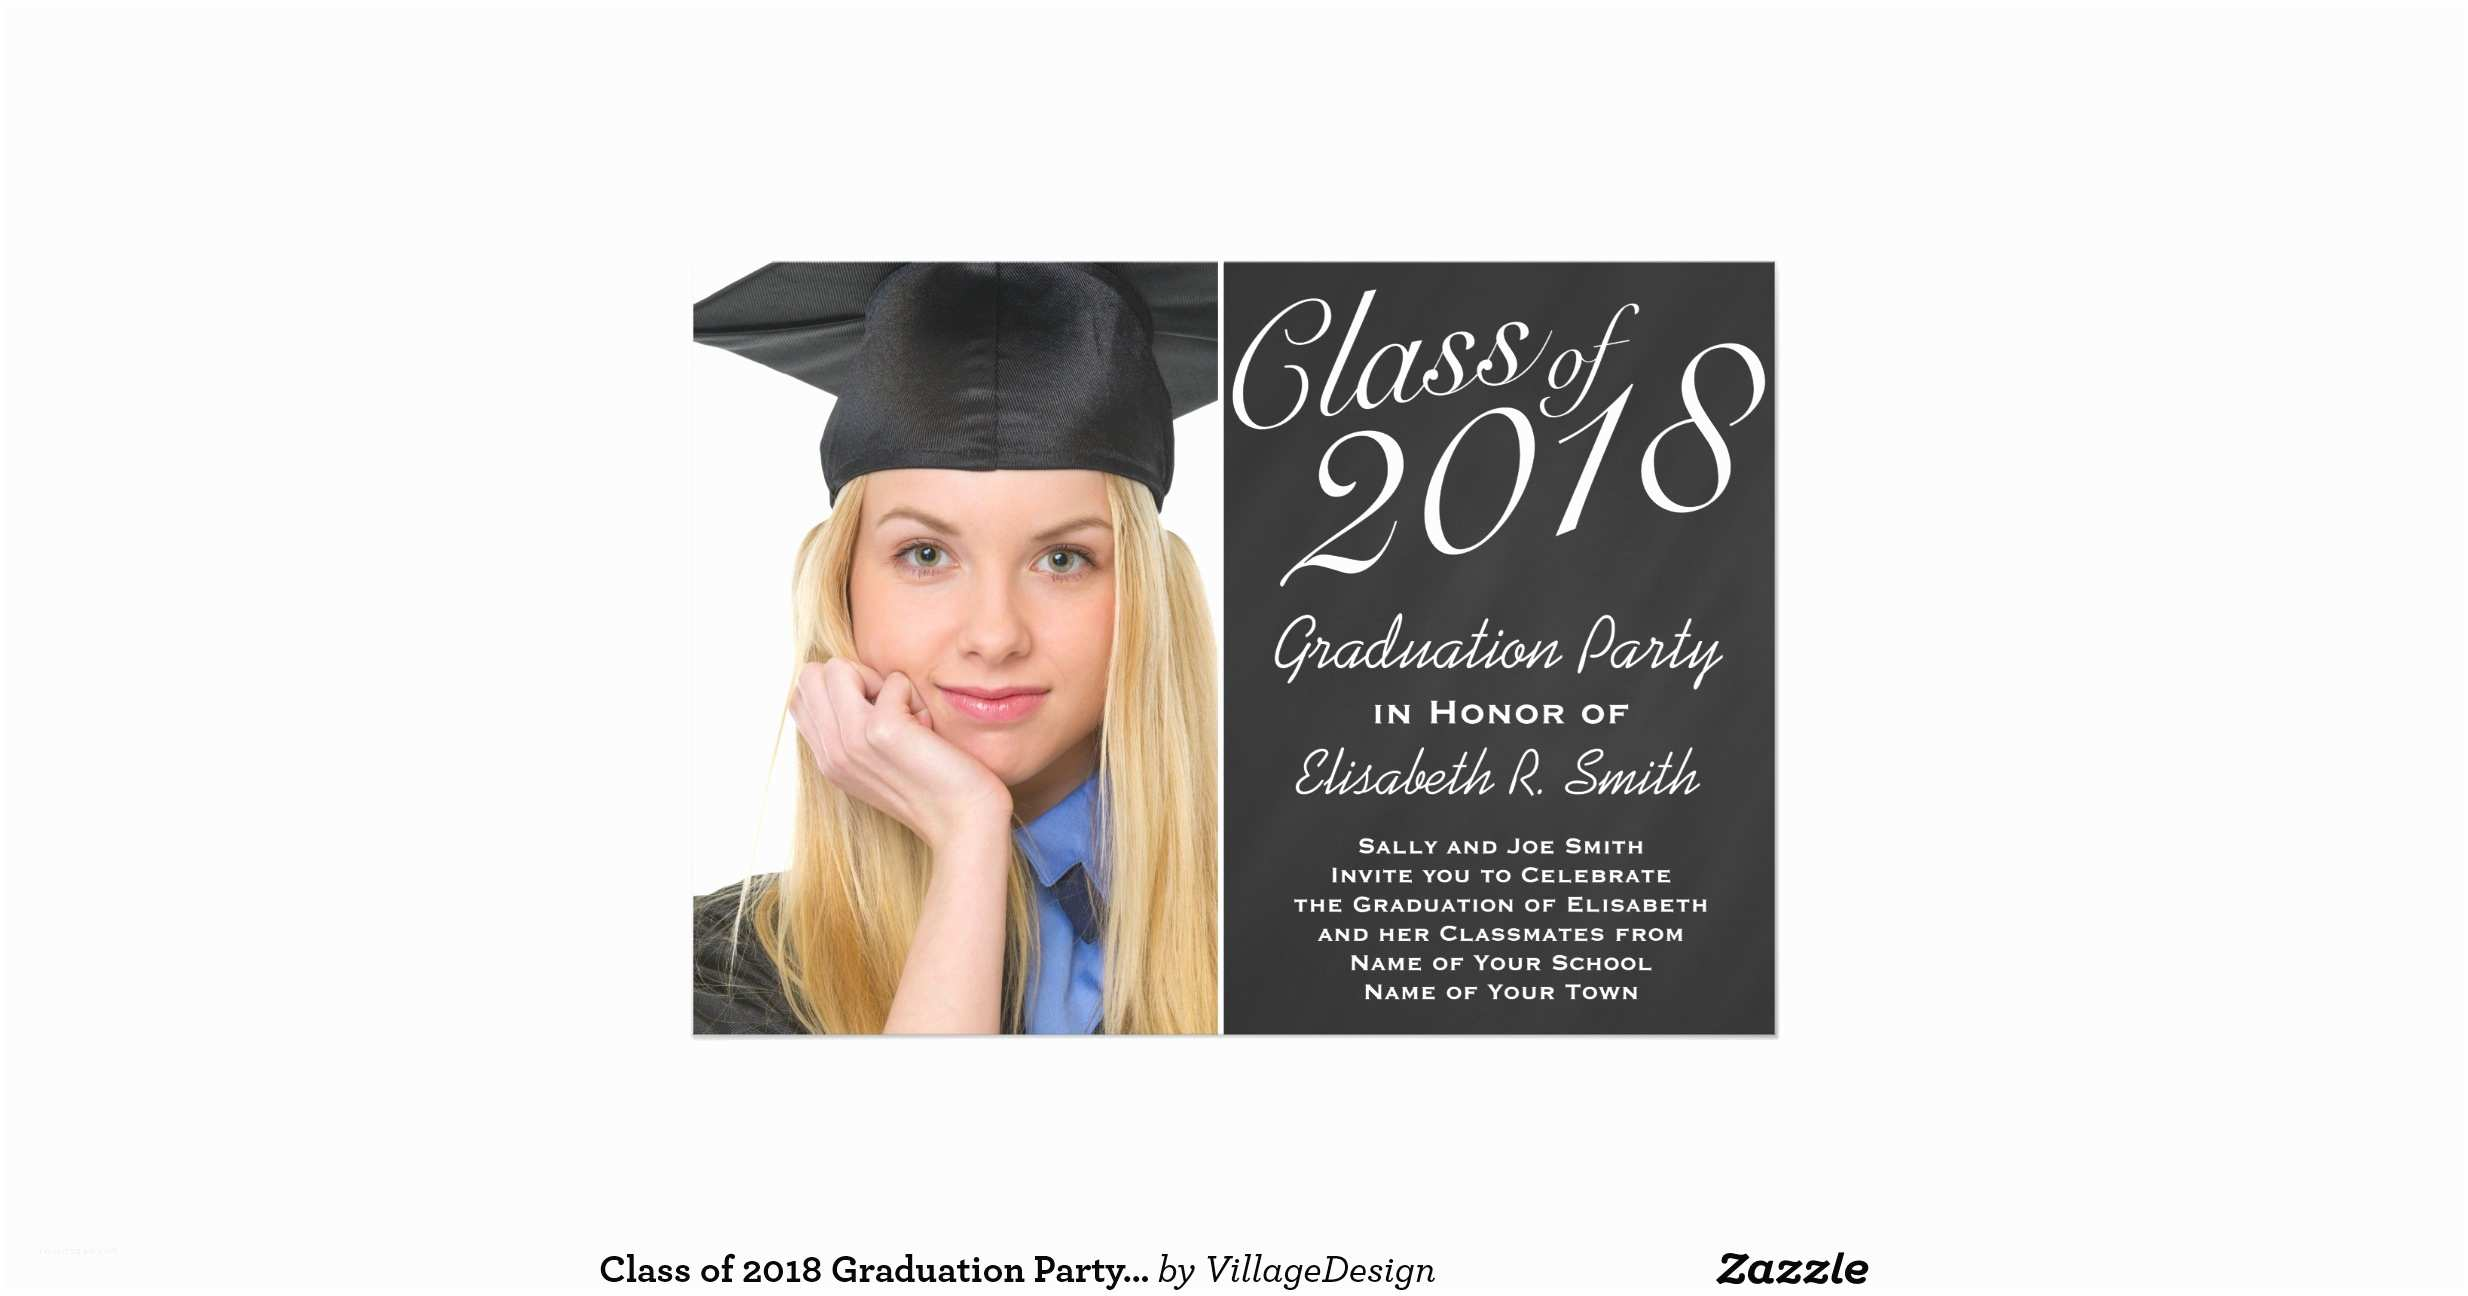 Graduation Party Invitations 2018 Class Of 2018 Graduation Party Chalkboard Portrait 5x7